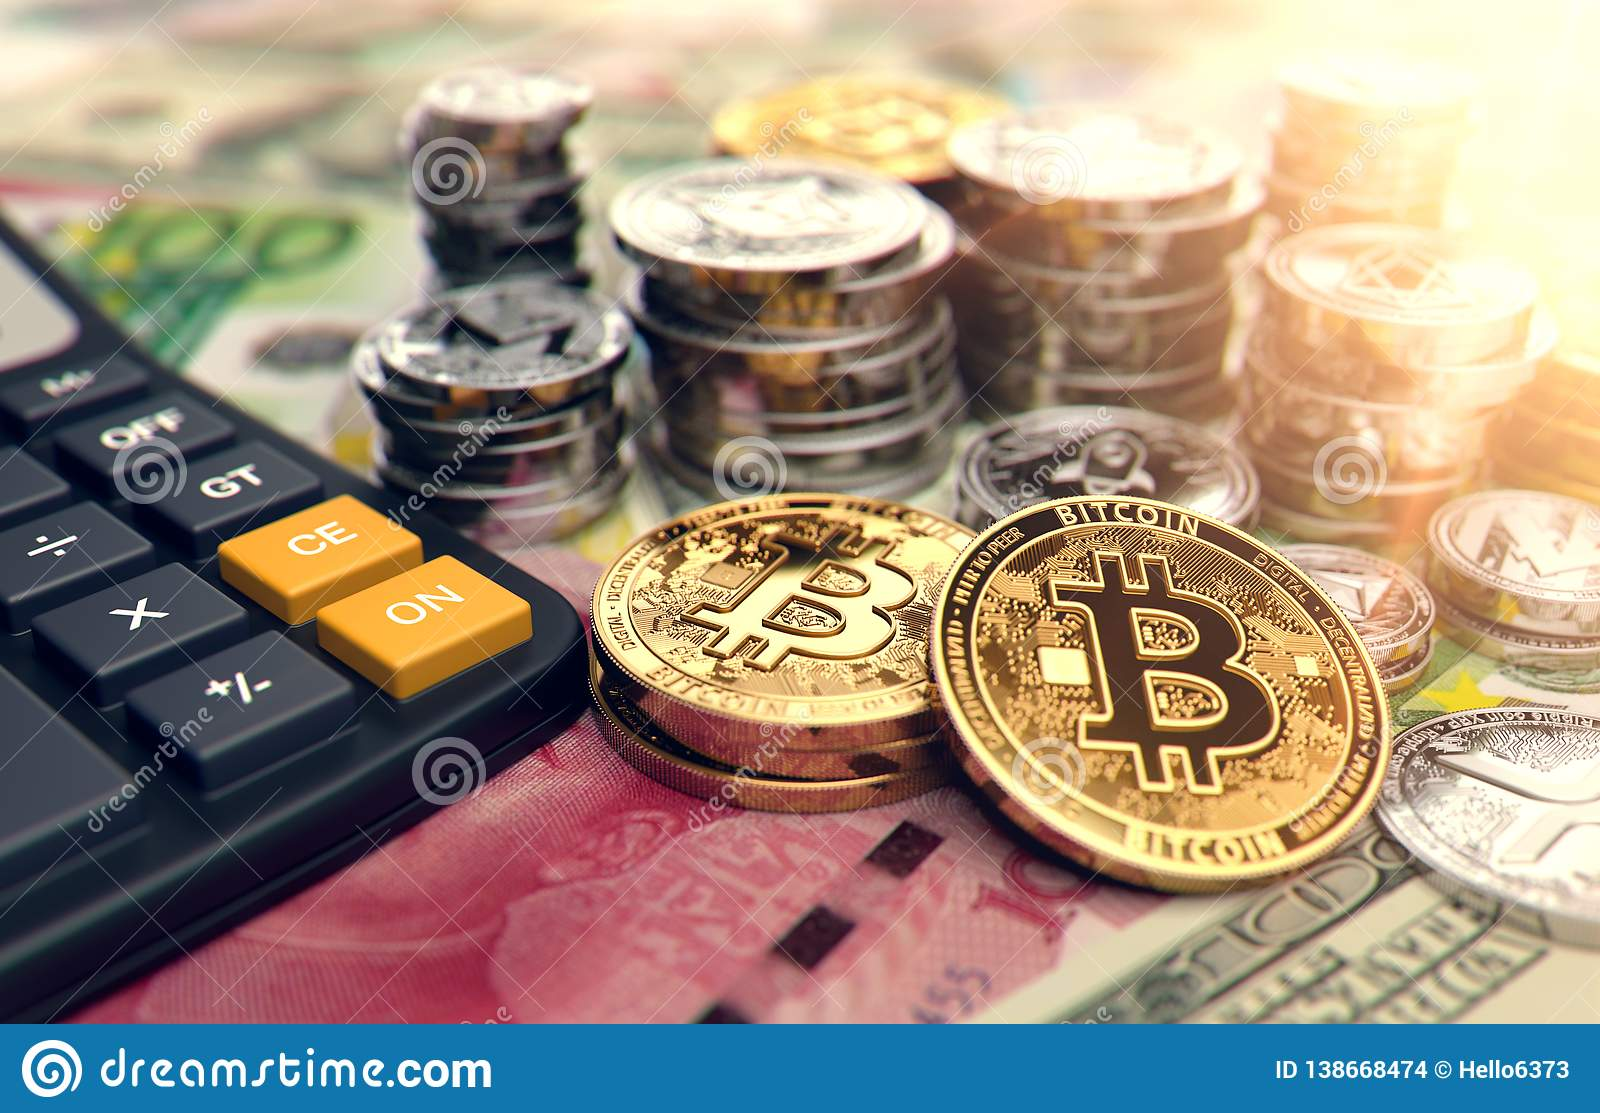 how profitable is investing in cryptocurrency